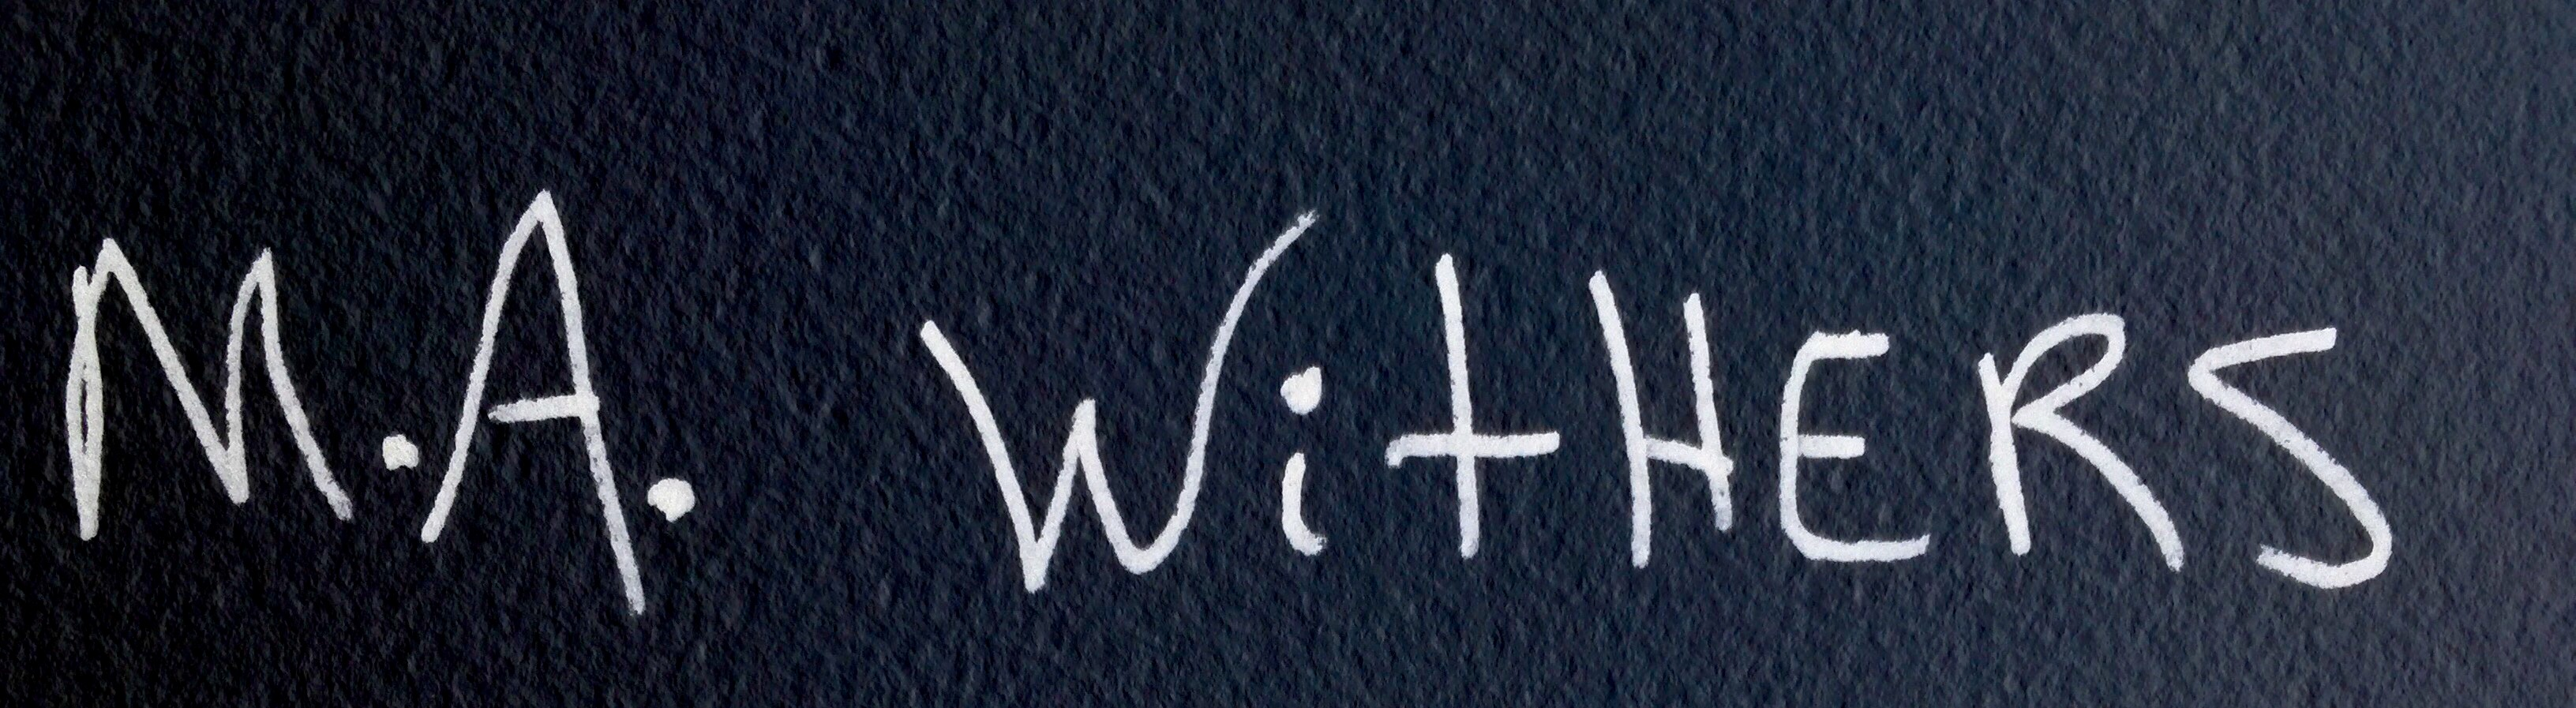 Margaret  Ann Withers's Signature